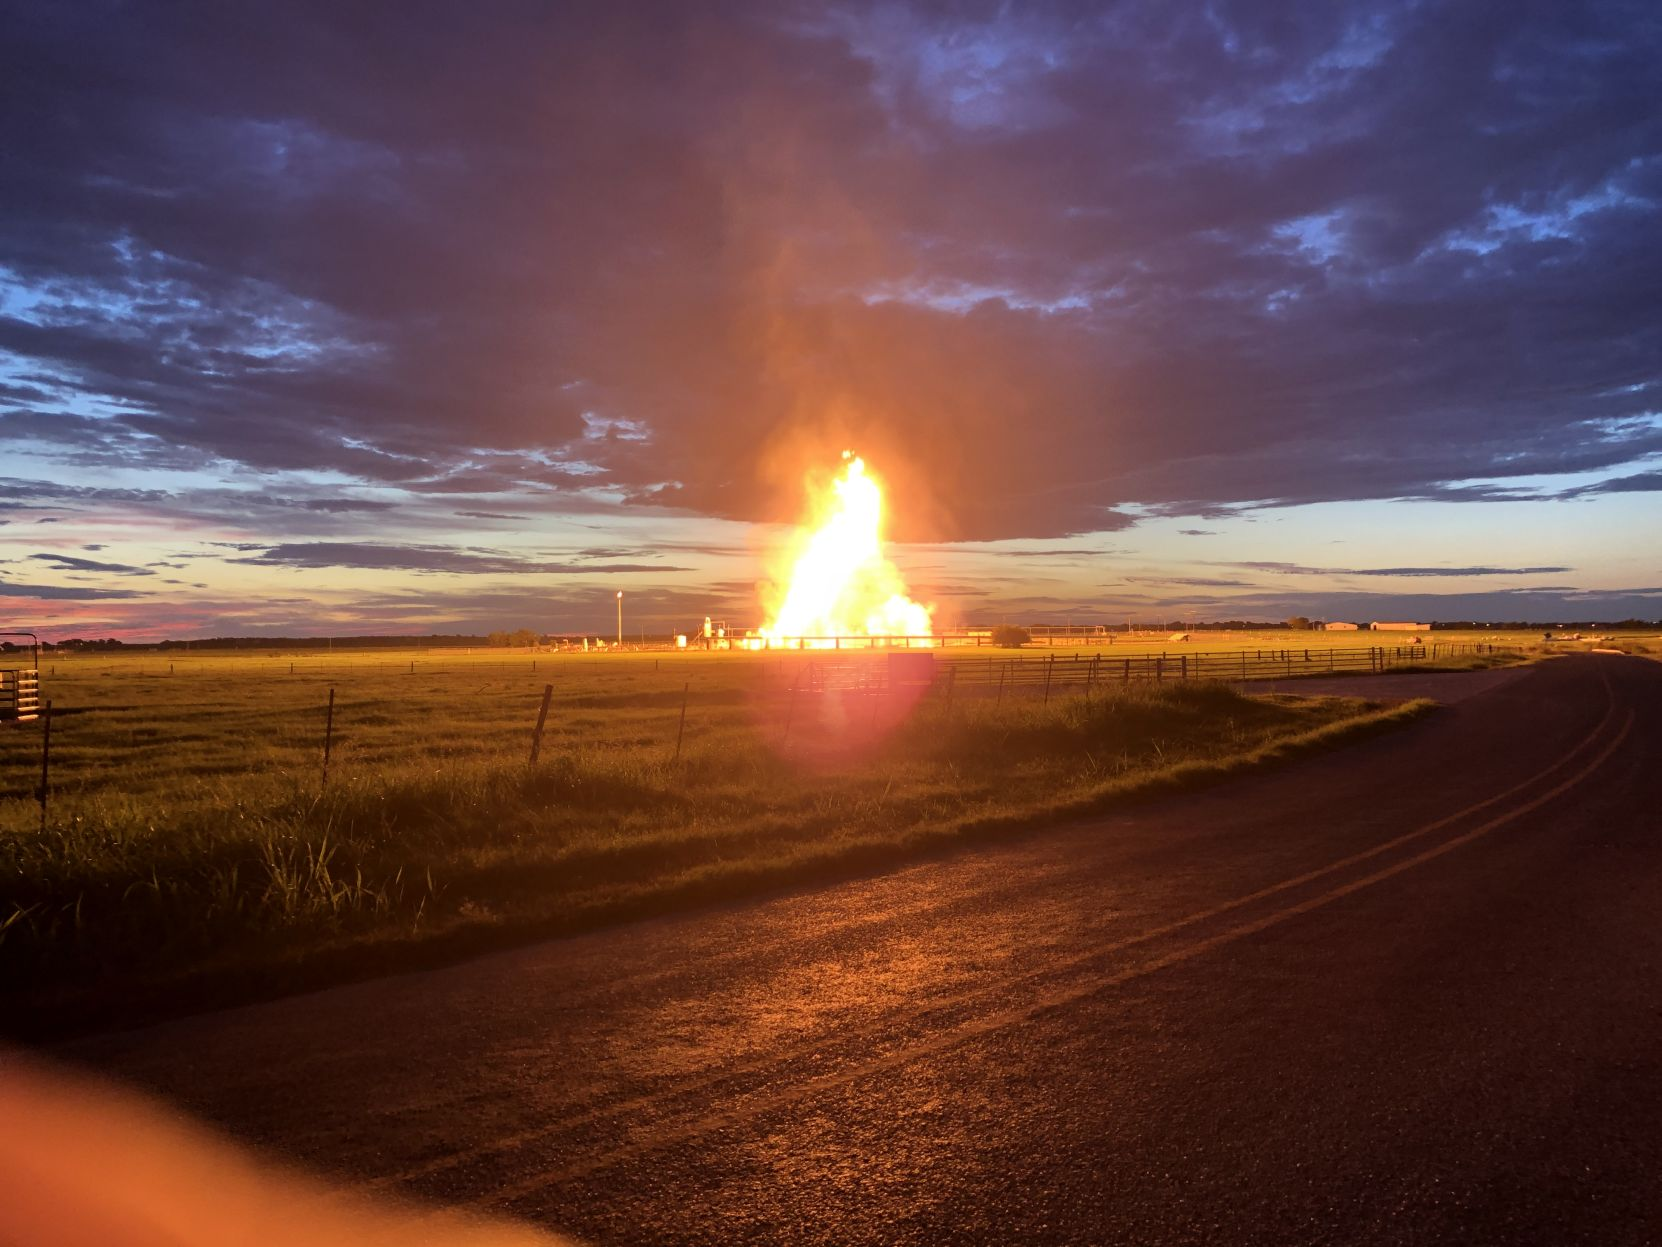 Fire was reported at a Karnes County natural gas facility